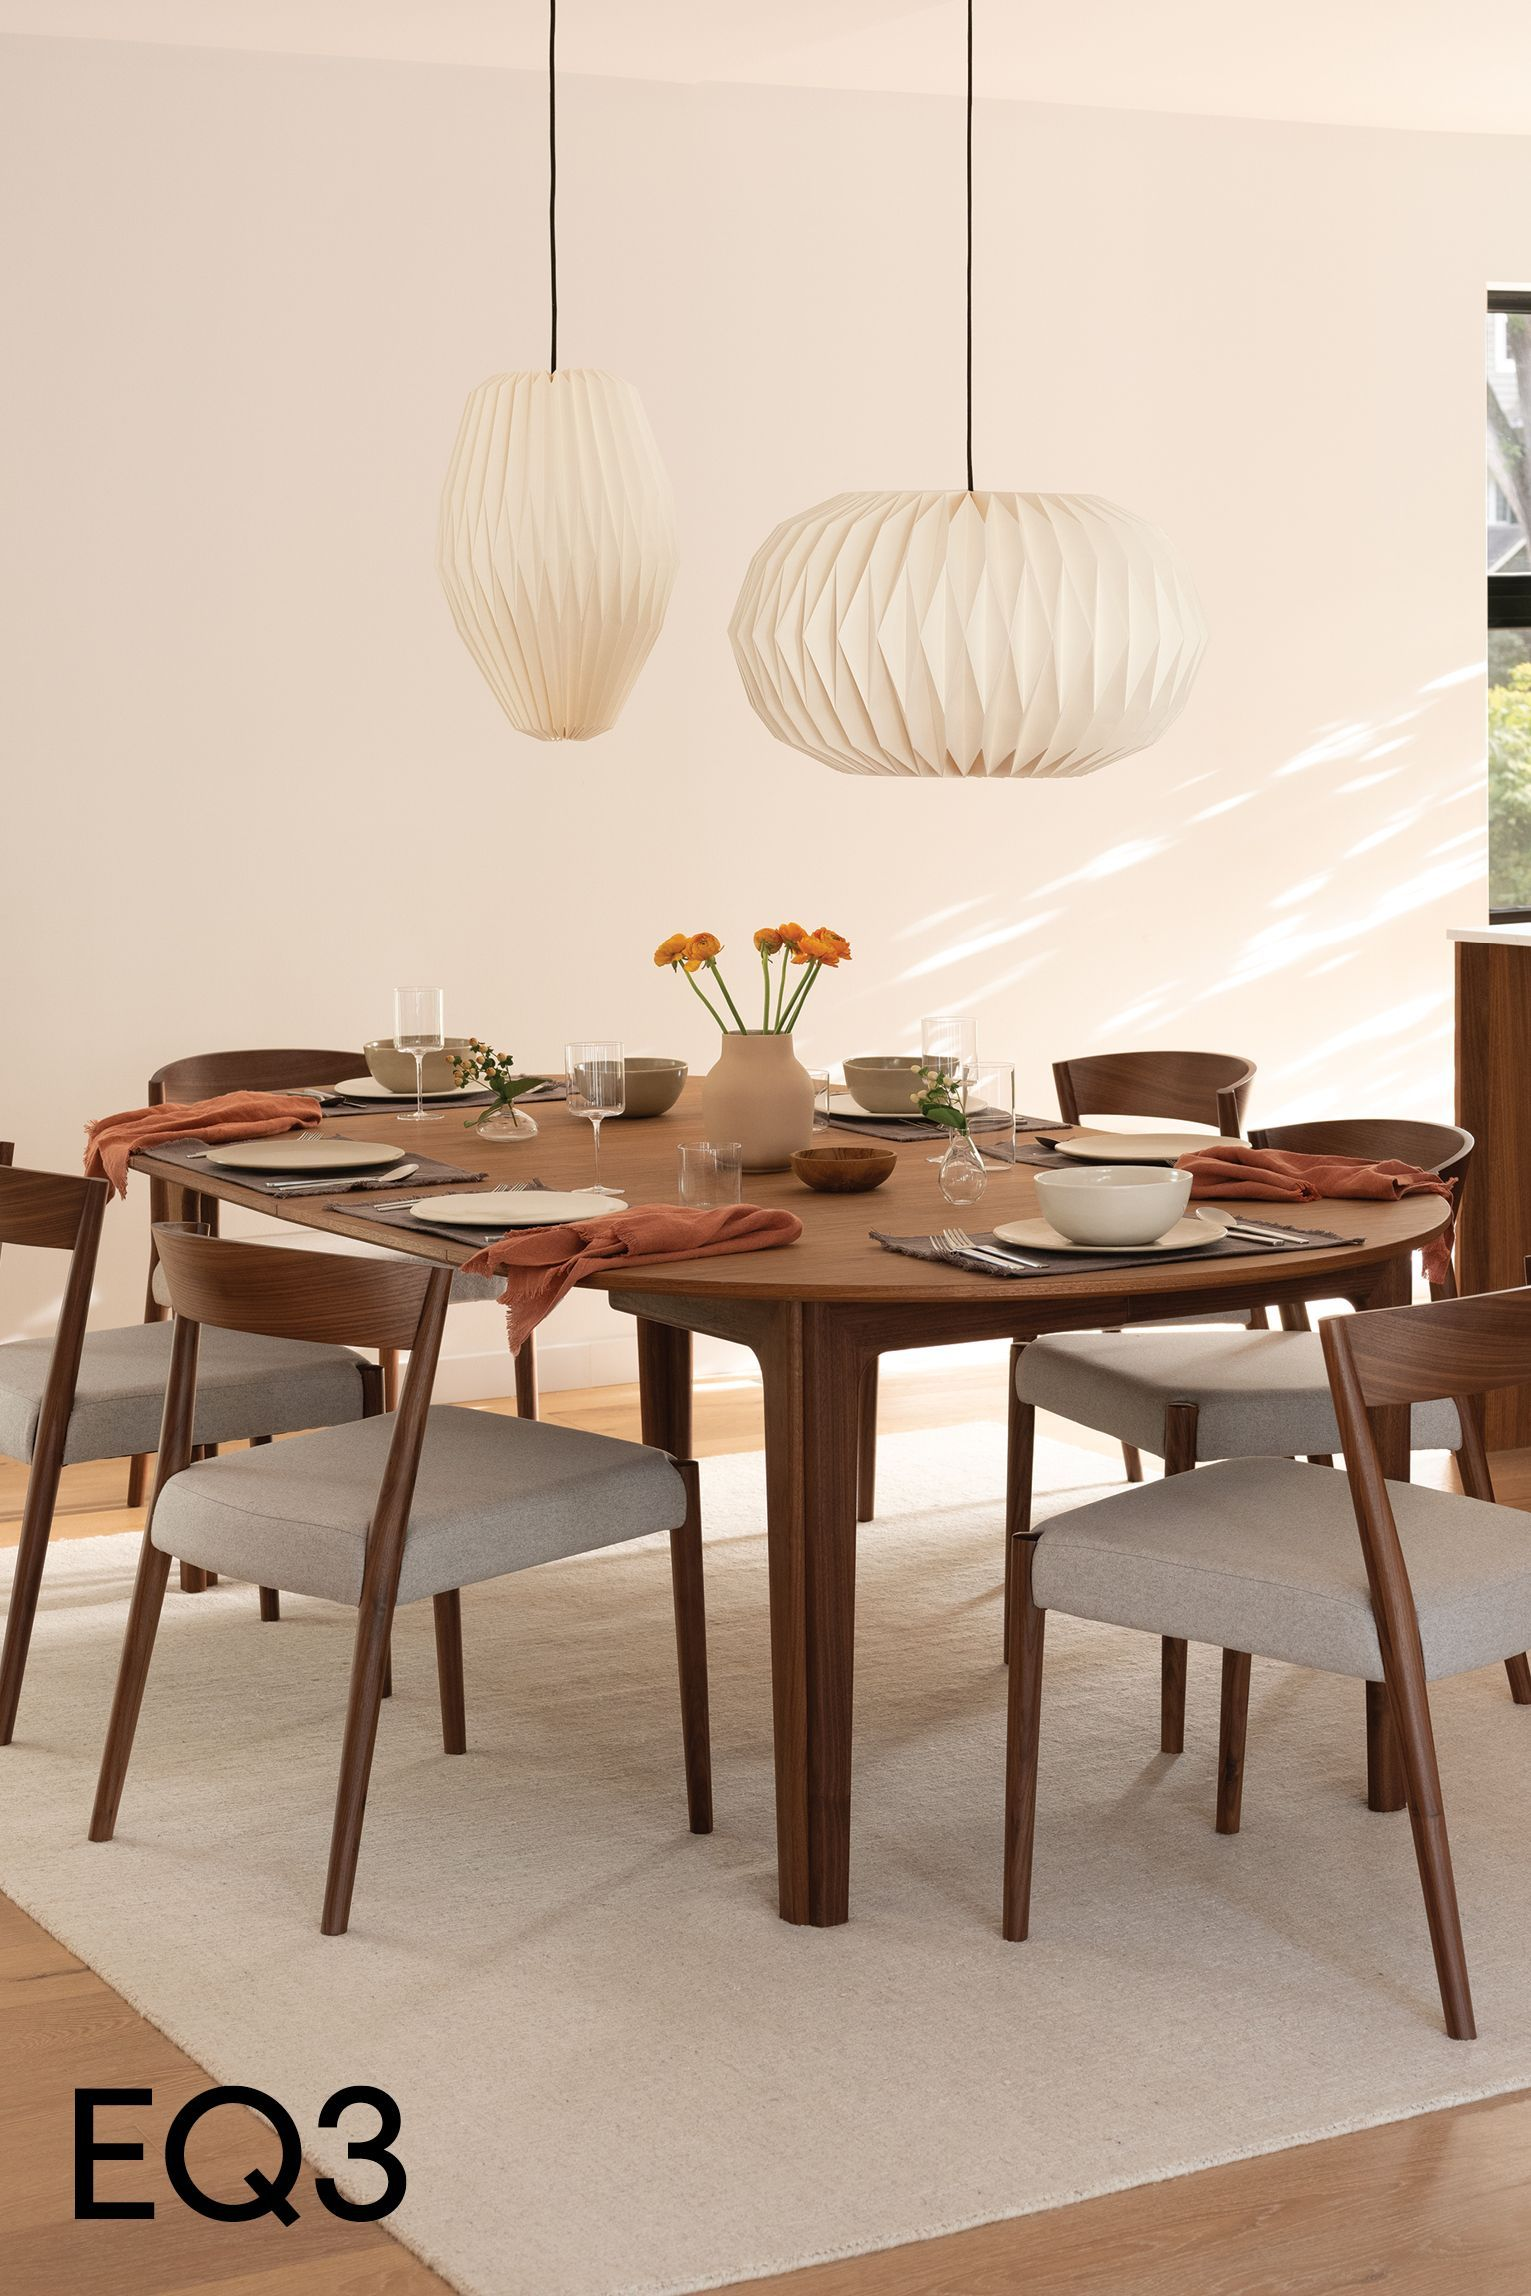 Dining season and hosting dinners with your dearest family and friends is just around the corner. Some of the best, most life-giving moments happen around a table. It is in sharing a meal that hearts are nourished, dreams are brought to life and memories are made. Set the table with this inspiration in mind. #diningroom #diningroomdesign #diningroomdecor #diningroom #diningroomtable #diningroomtablecenterpieceideas #diningroomlighting